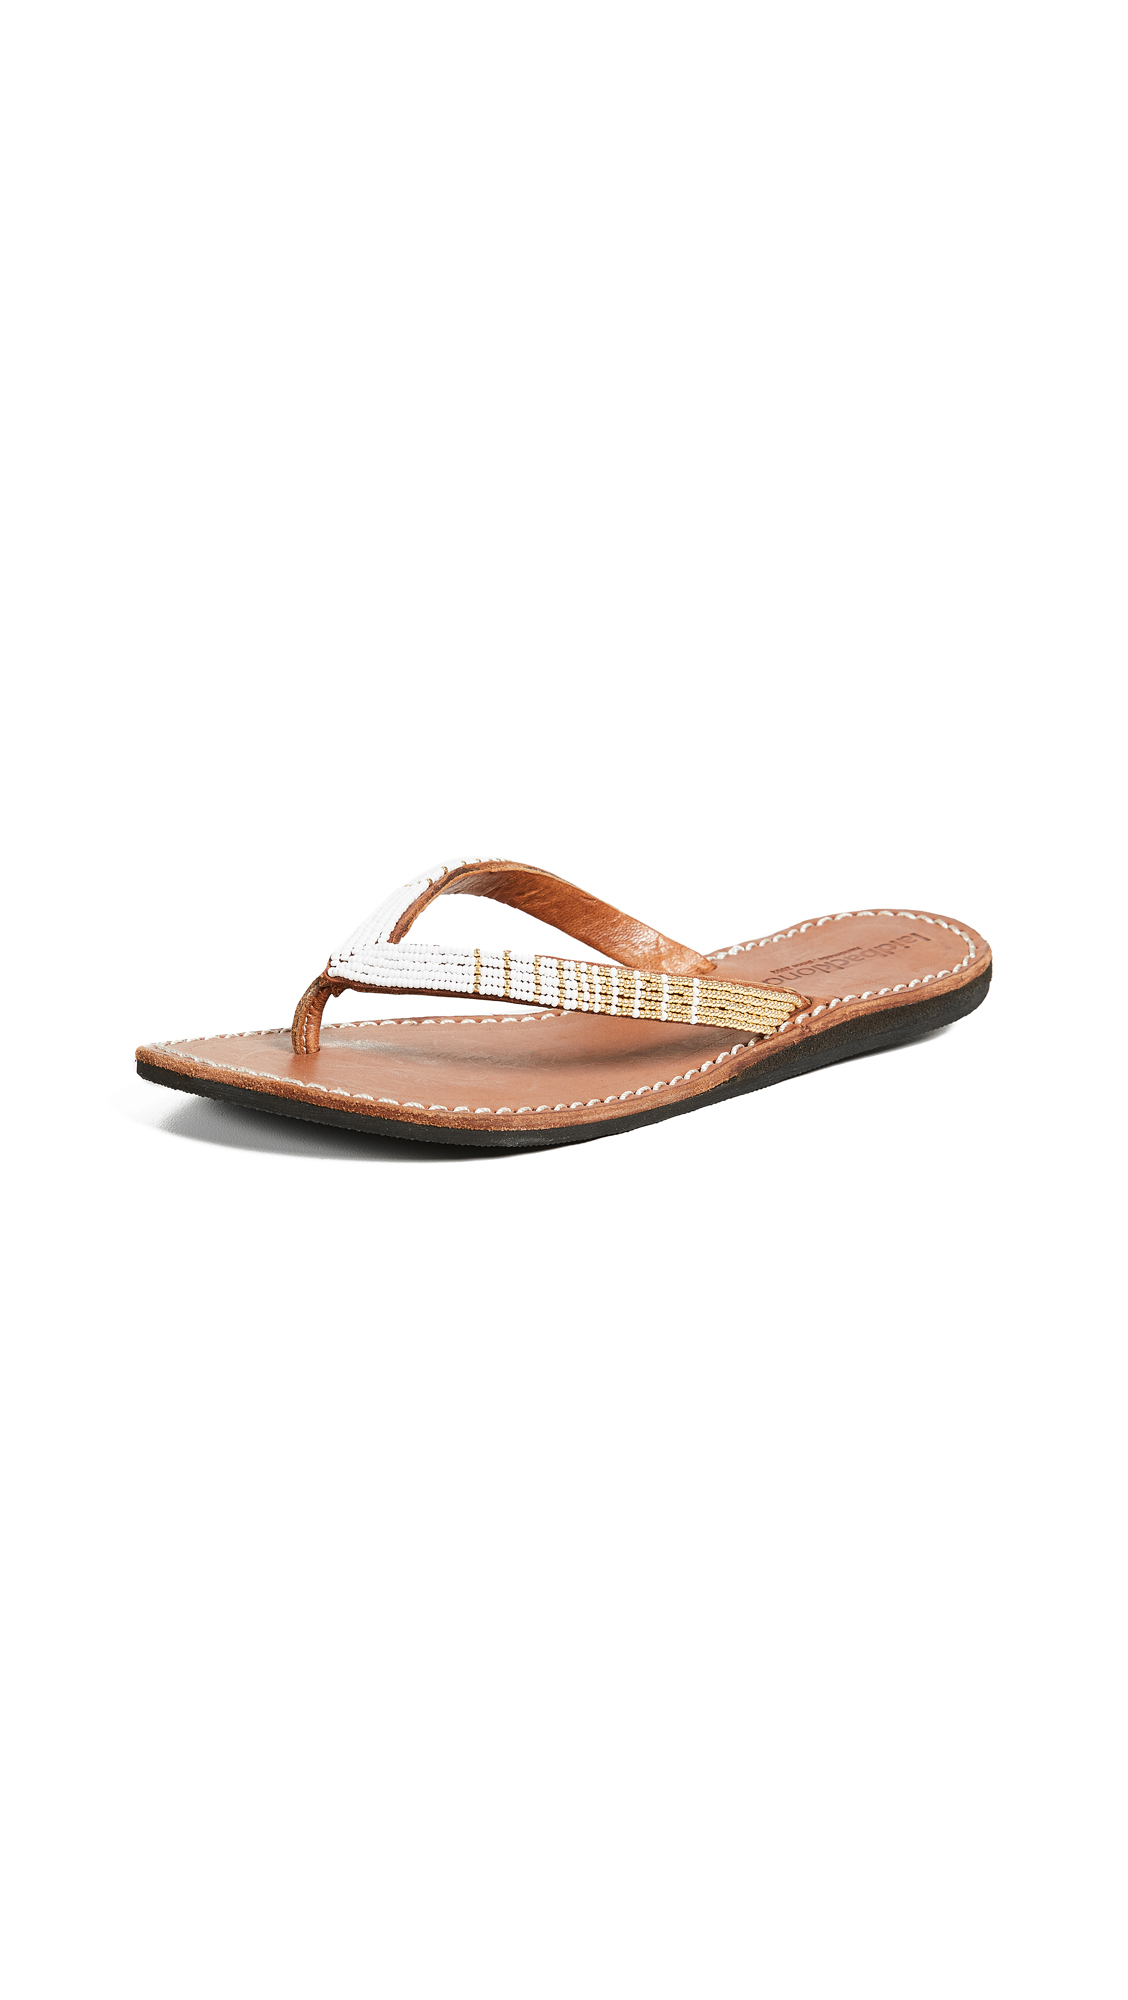 Laidback London Seri Flip Flops - Brown/White/Gold